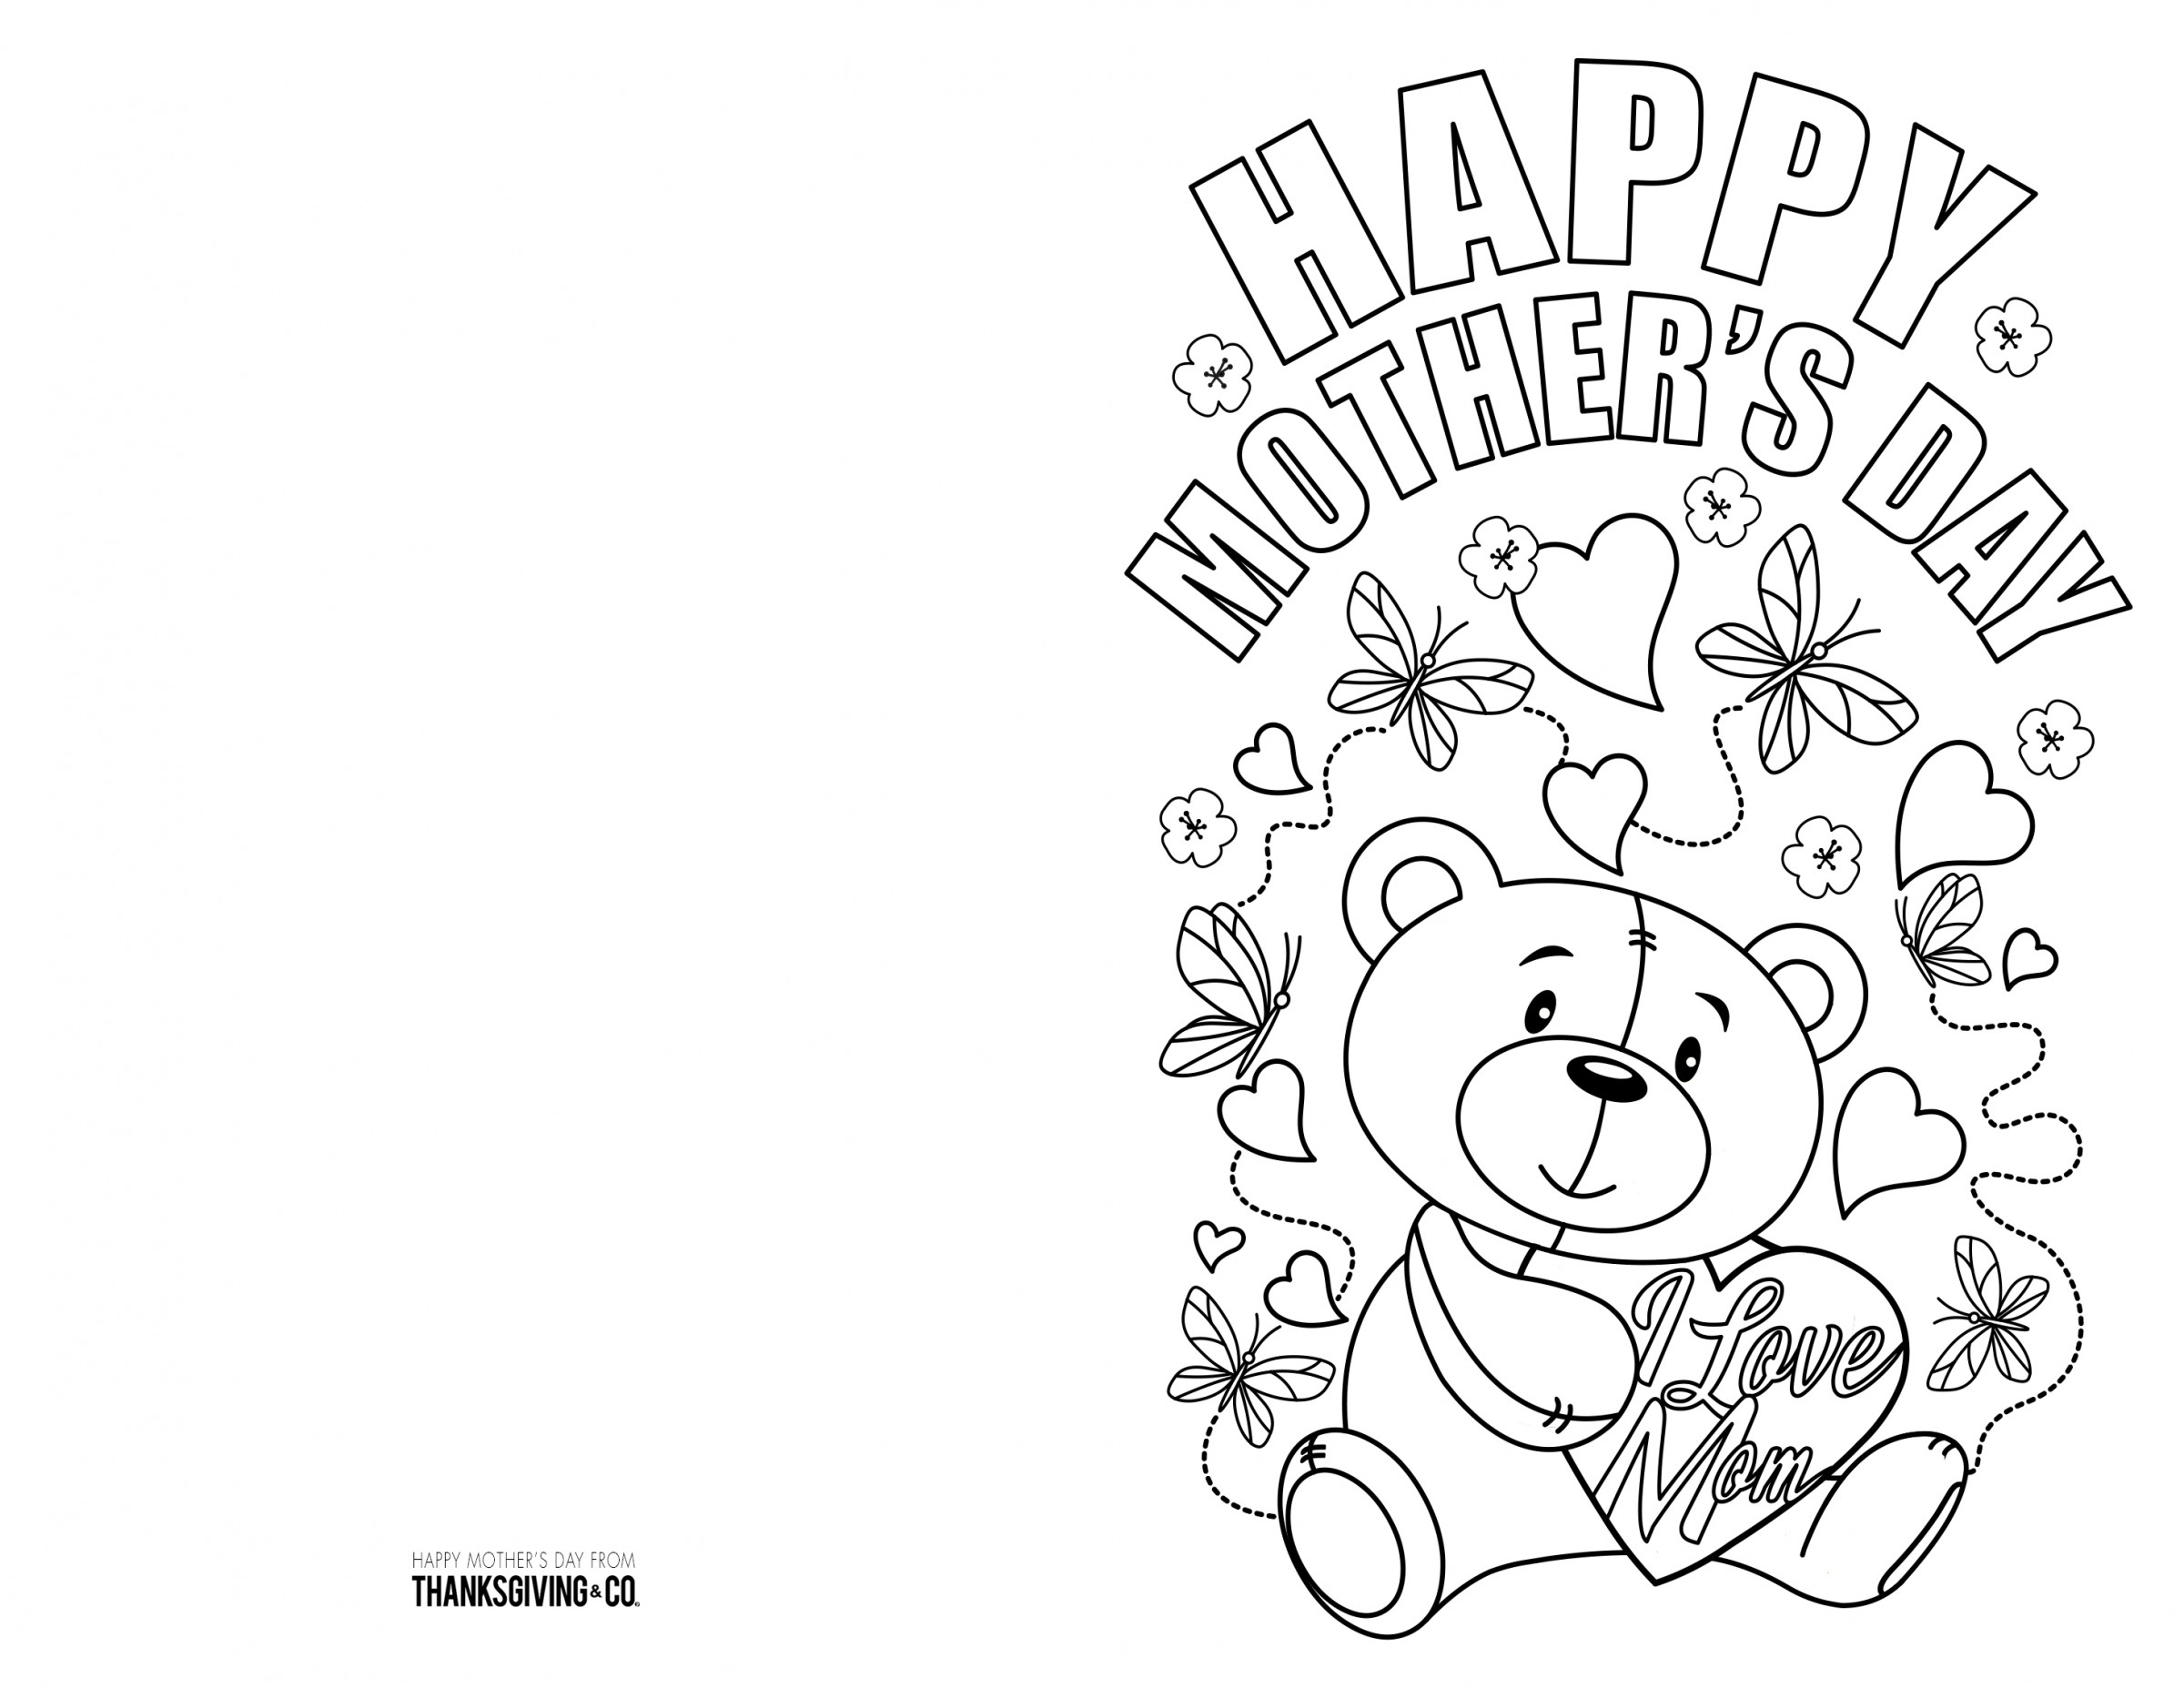 4 Free Printable Mother's Day Ecards To Color - Thanksgiving - Free Printable Cards To Color